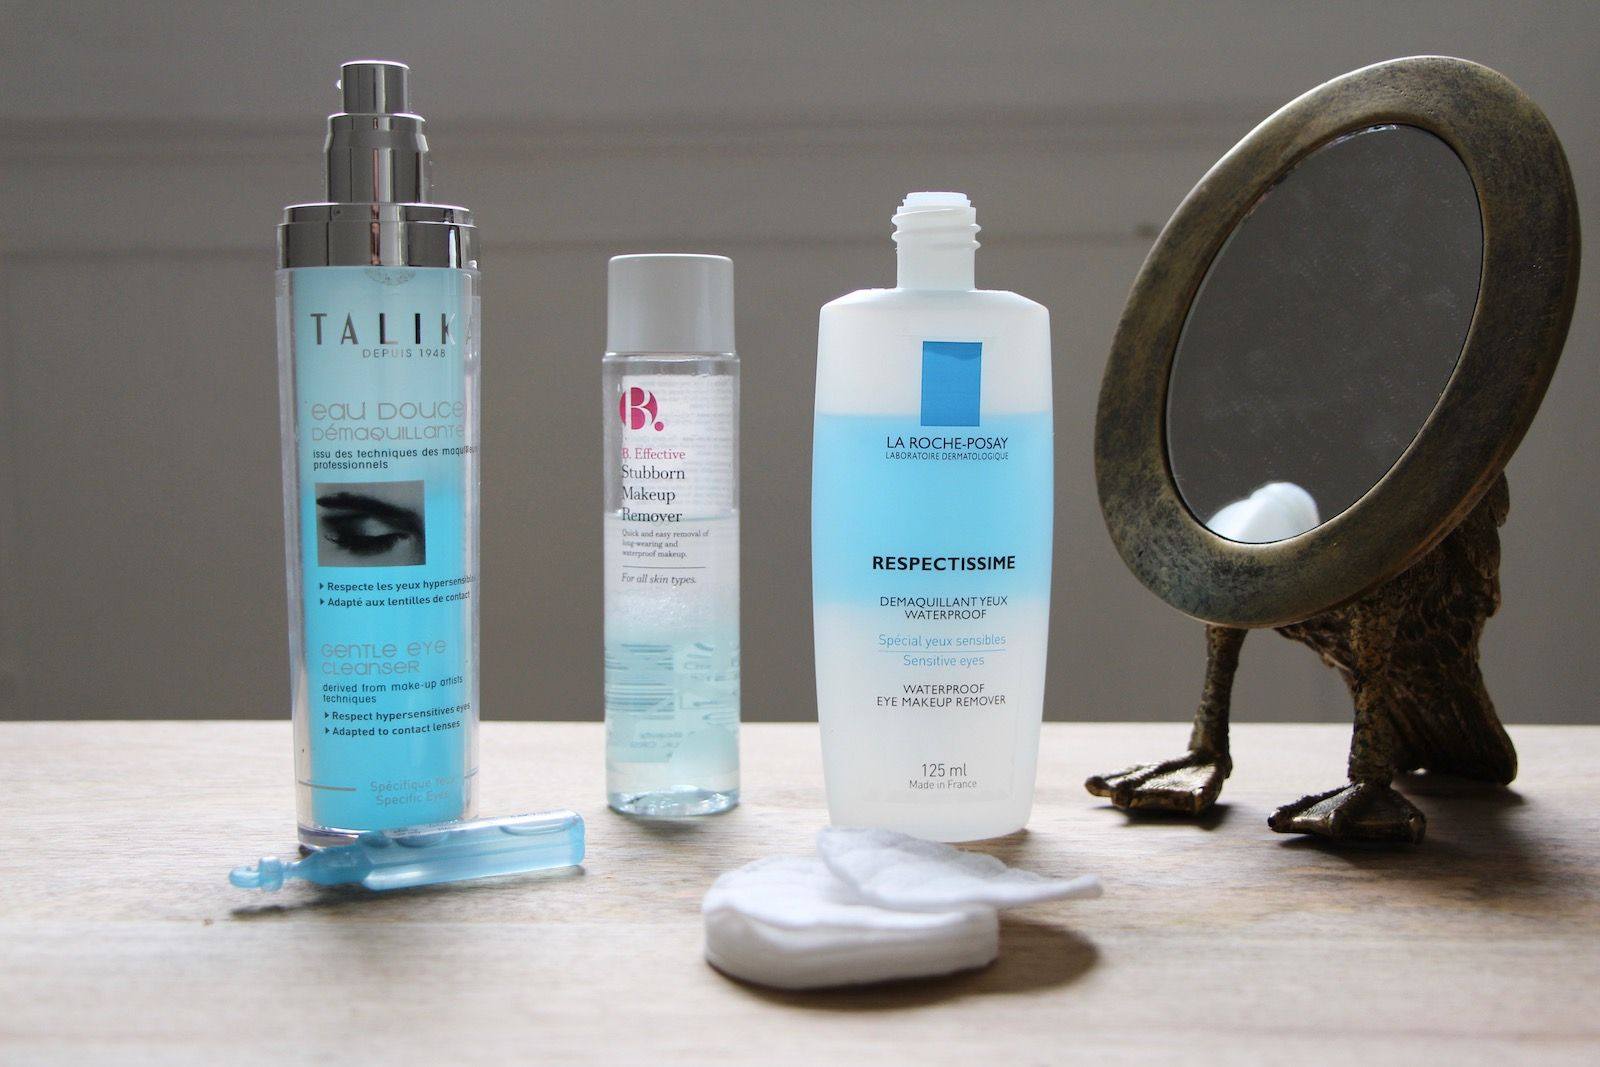 The Best Makeup Removers for Sensitive Eyes Best makeup